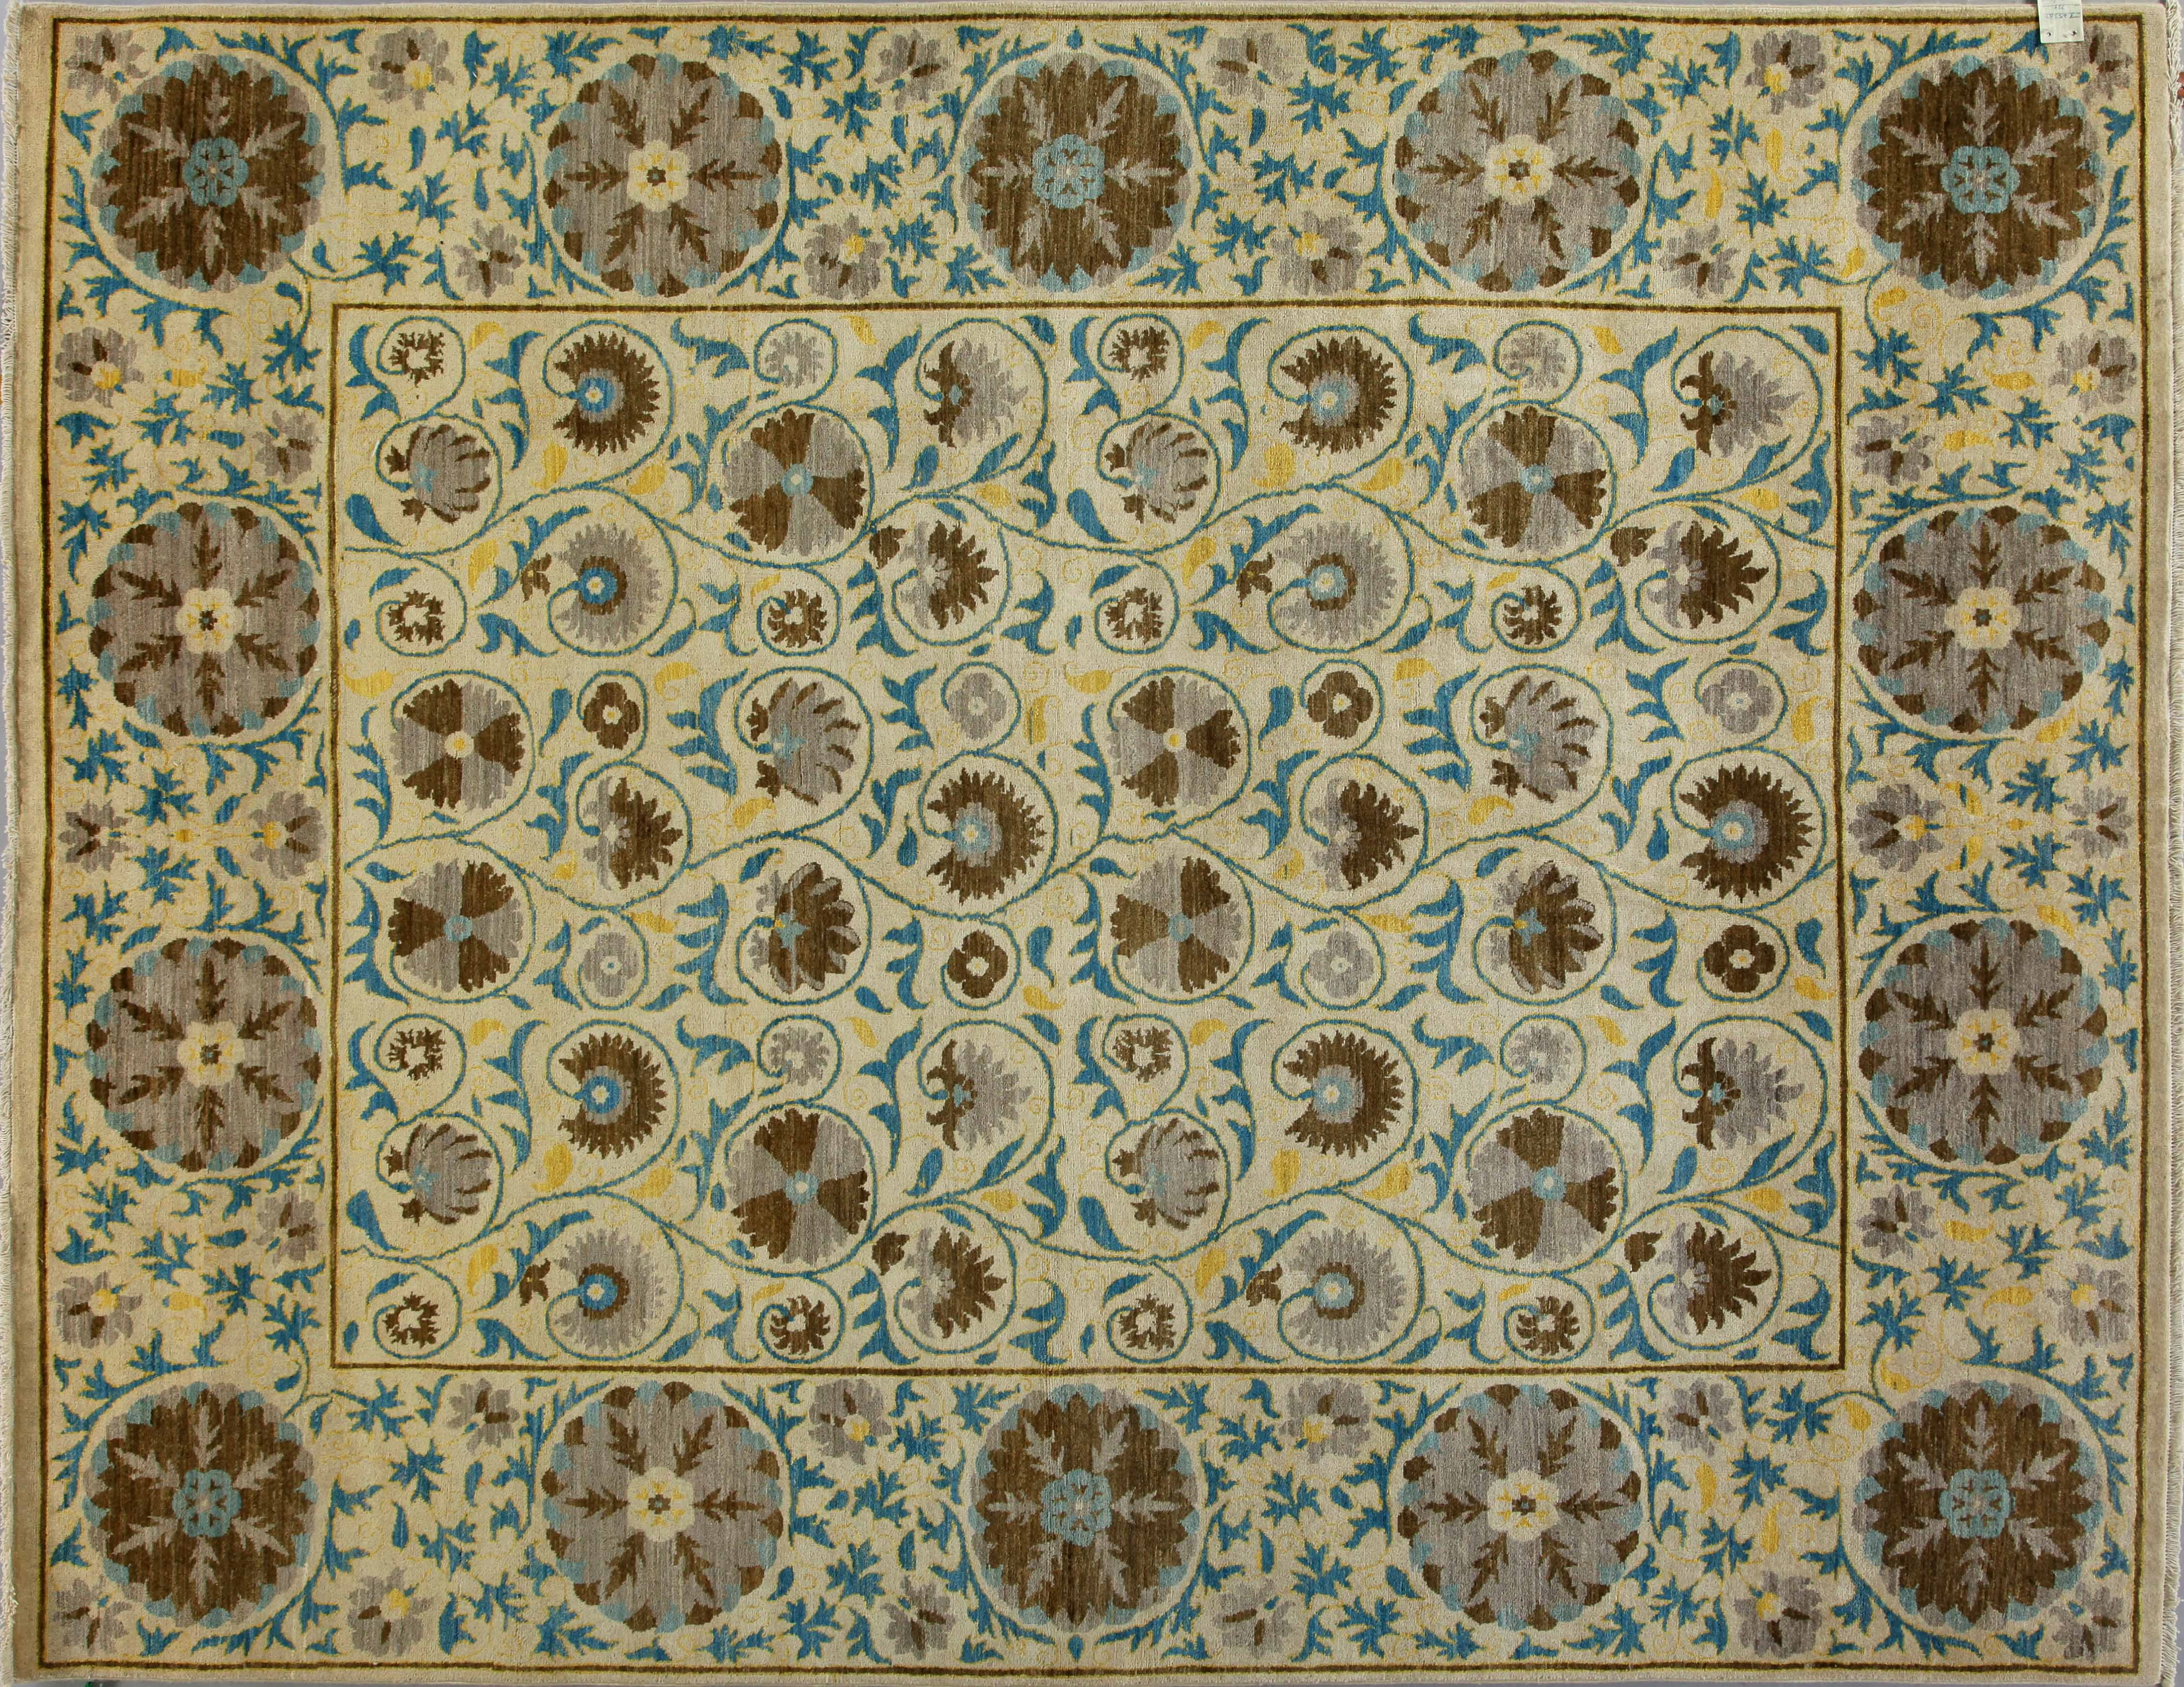 8x10 Contemporary Hand Knotted Wool Area Rug - MR17309